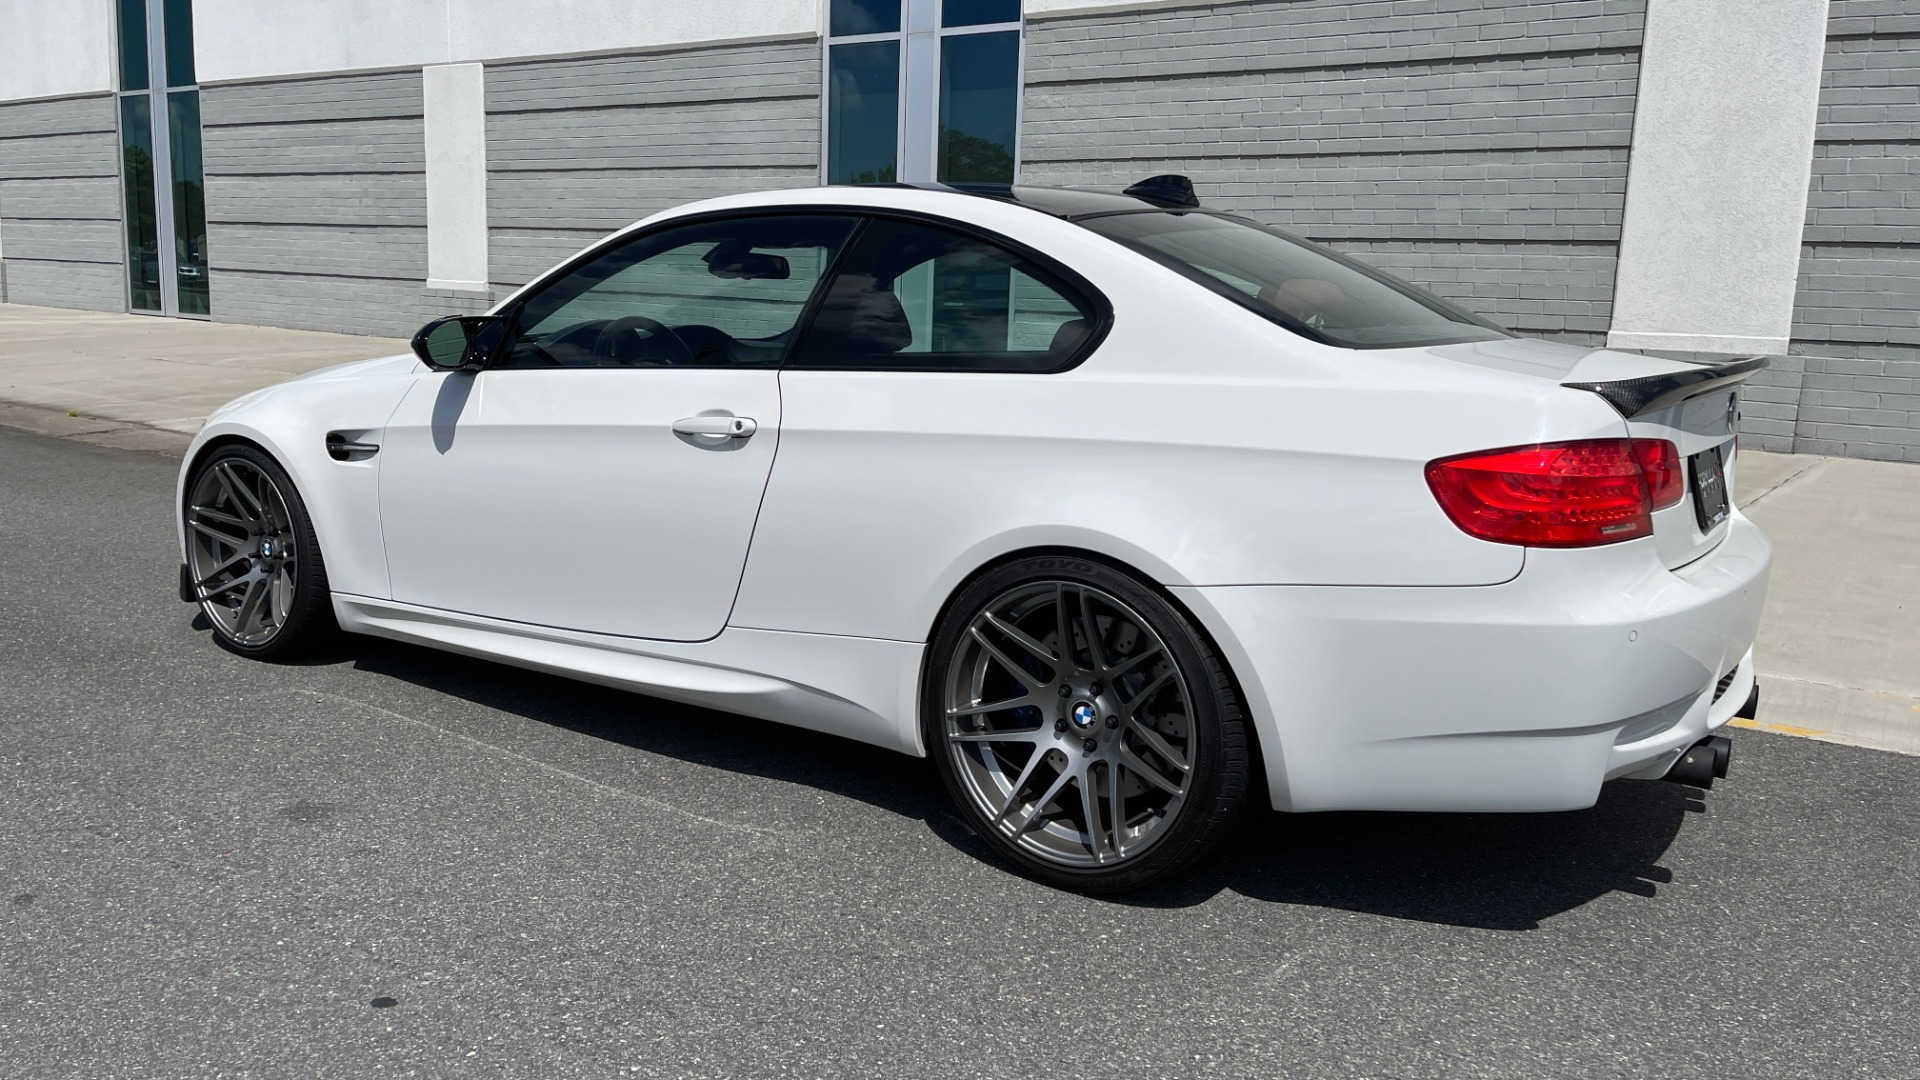 Used 2011 BMW M3 PREMIUM COUPE / CLD WTHR / TECH / SMARTPHONEINT / PARK ASST for sale Sold at Formula Imports in Charlotte NC 28227 5